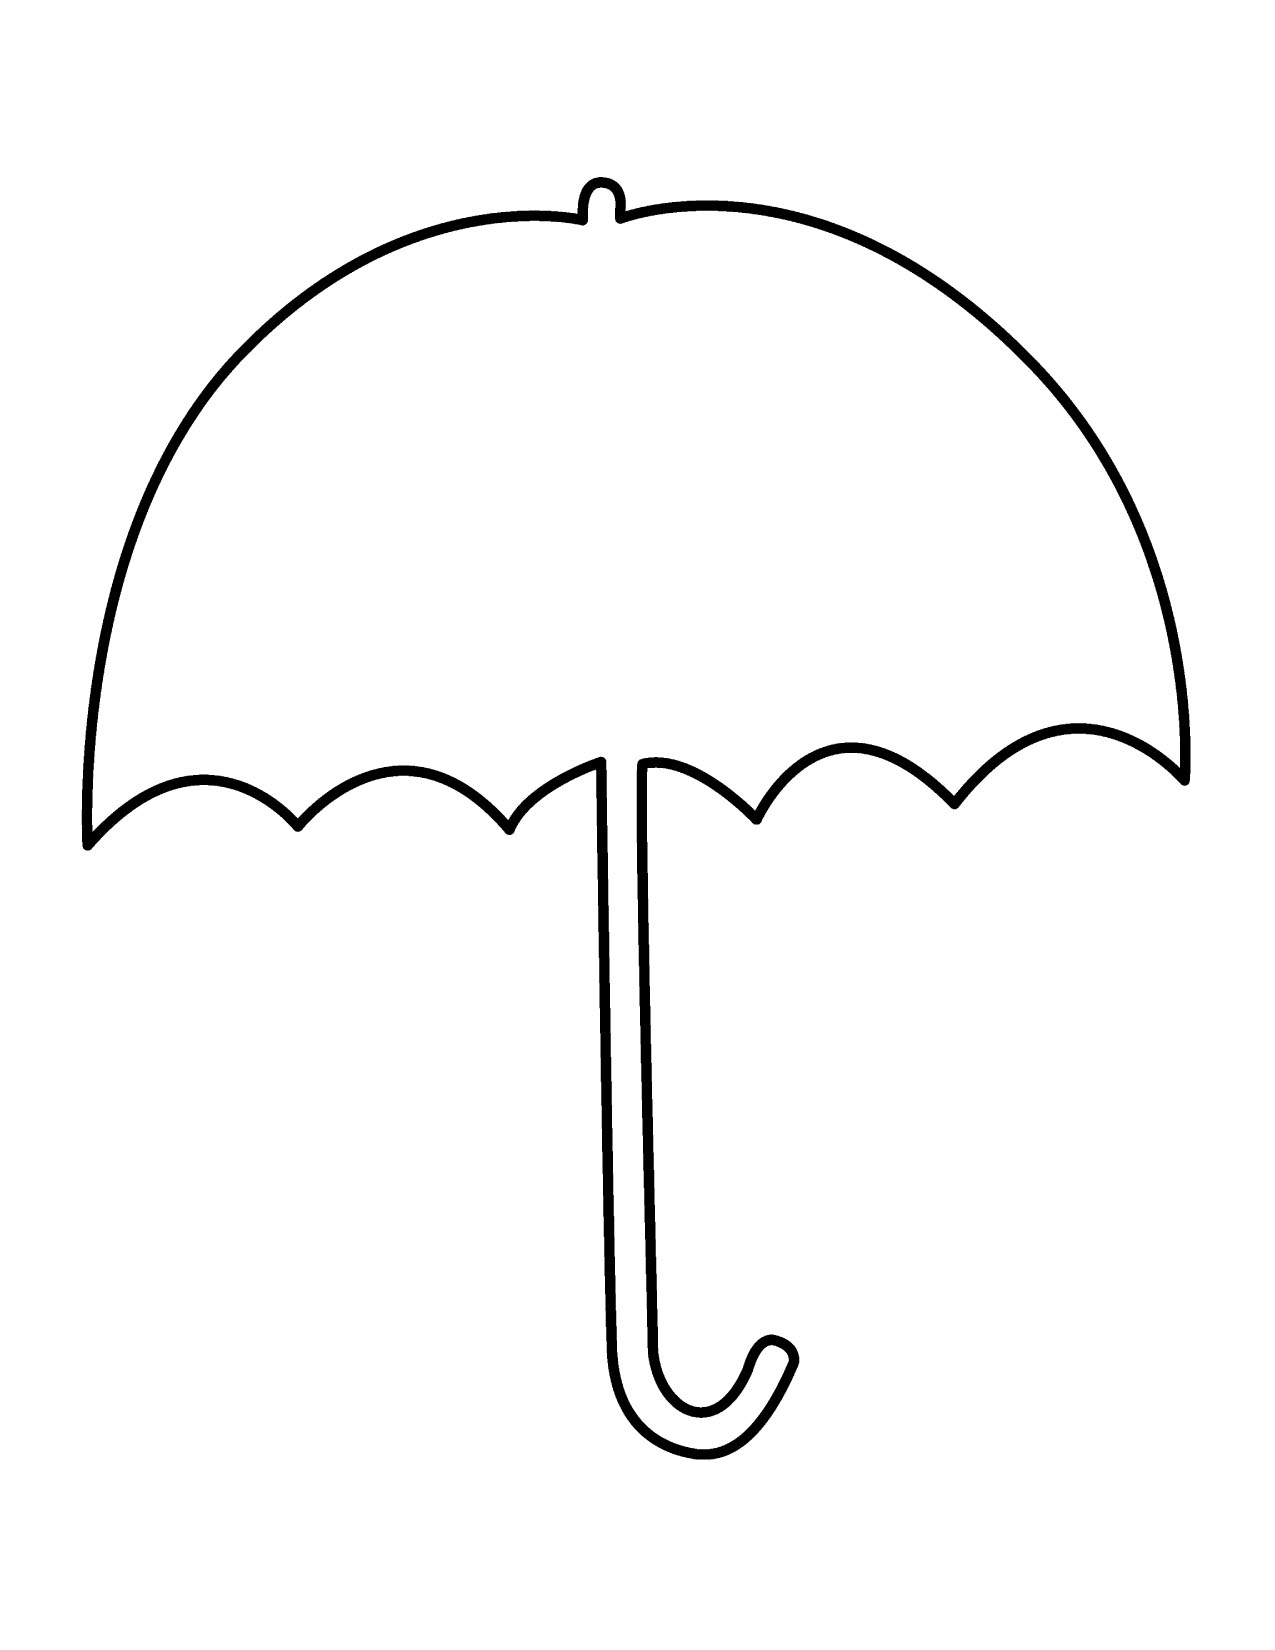 Umbrella templates printable clipart best for Printable umbrella template for preschool